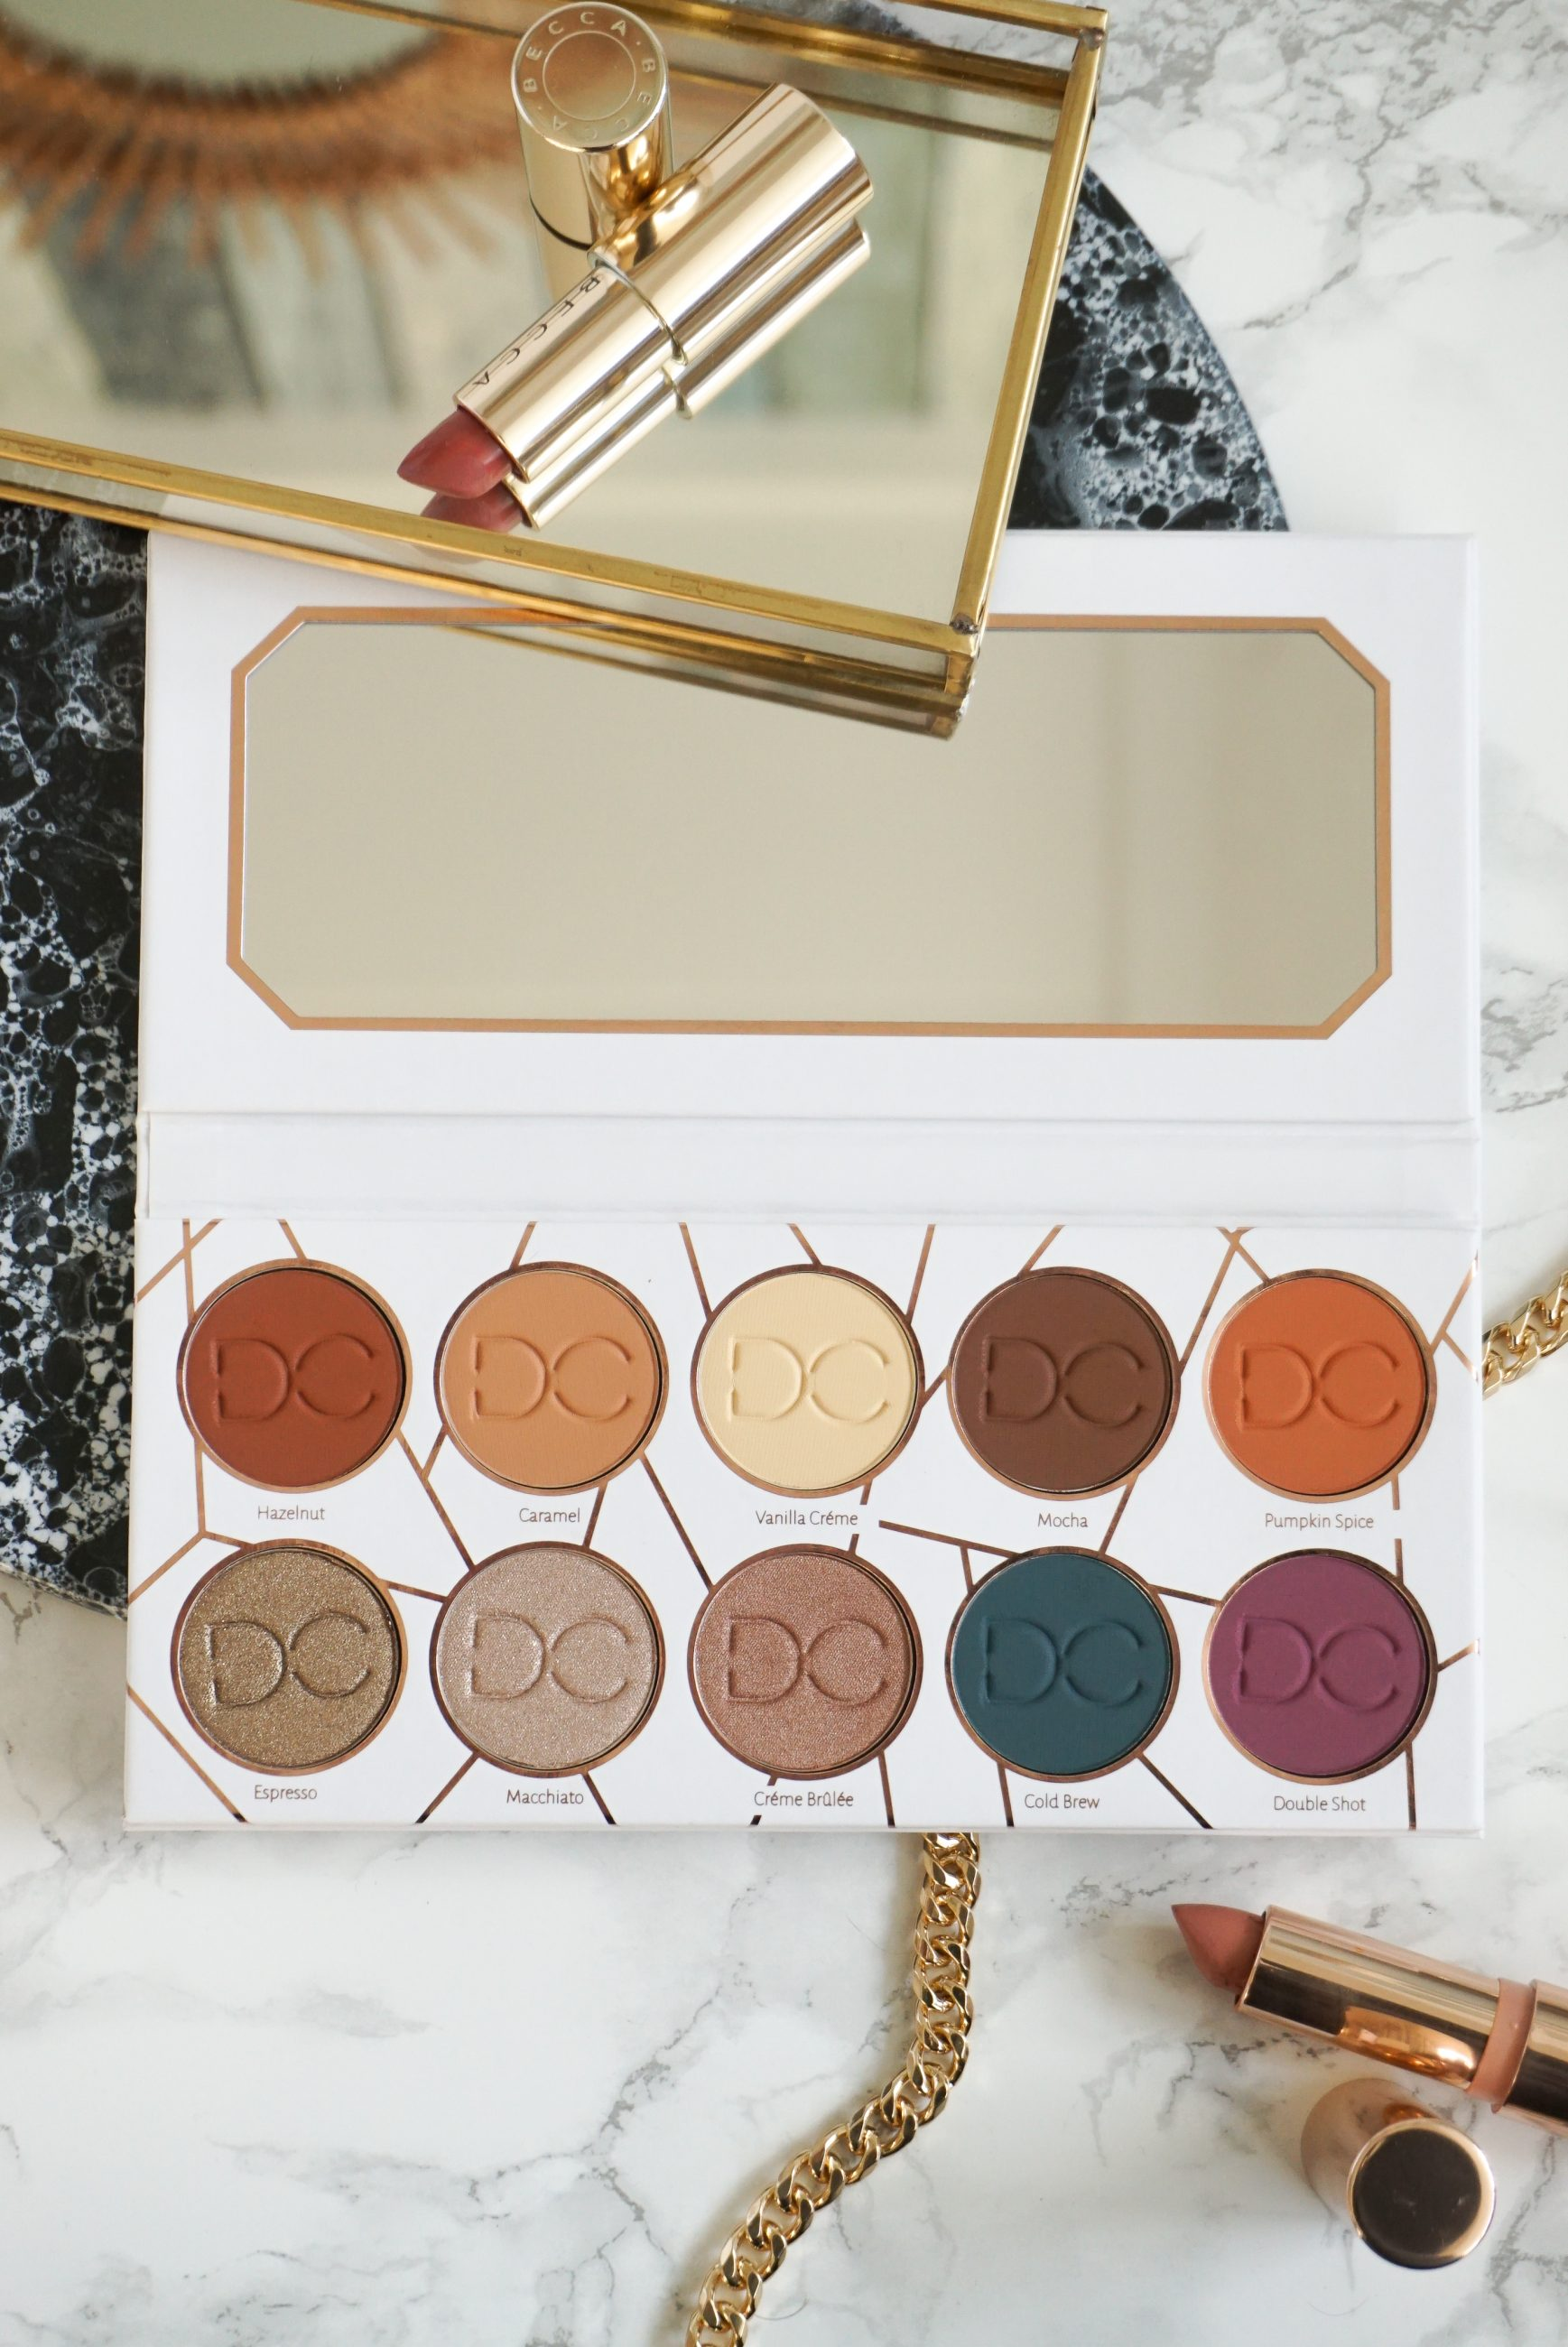 Coffee Inspired 10-Pan Dominique Cosmetics The Latte Eyeshadow Palette Review